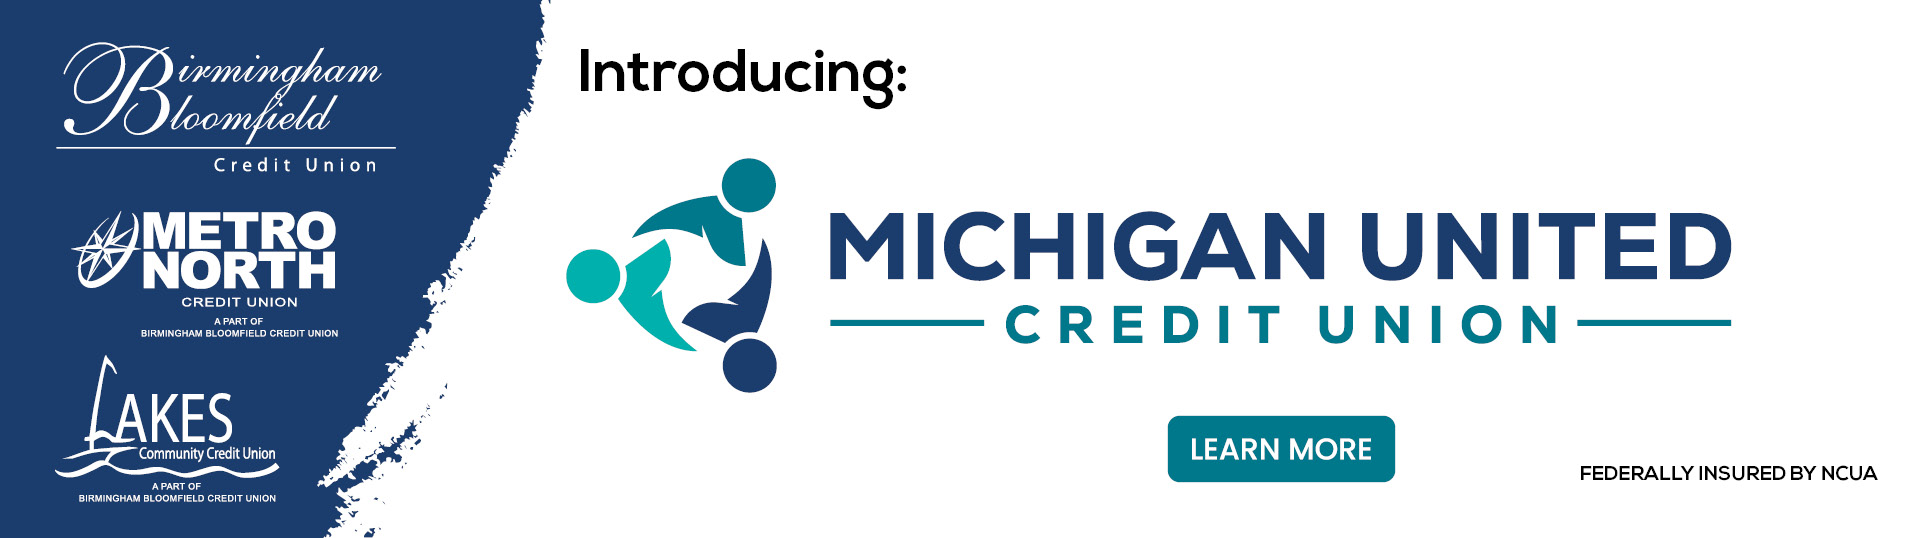 Introducing Michigan United Credit Union Home page